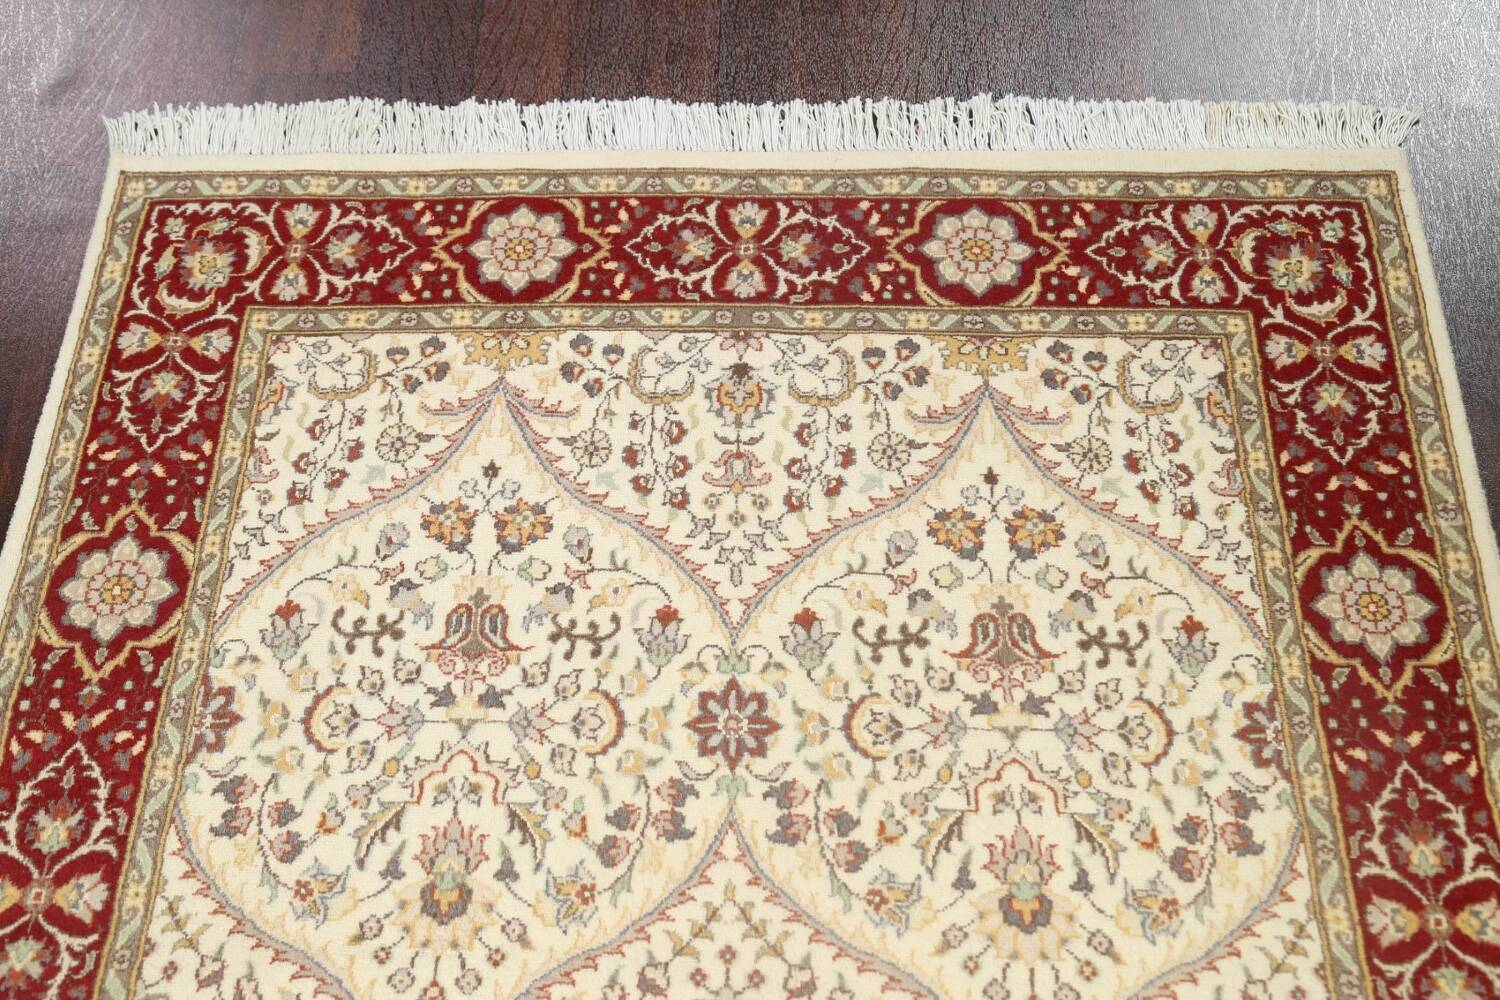 100% Vegetable Dye Floral Tabriz Oriental Area Rug 4x6 image 9